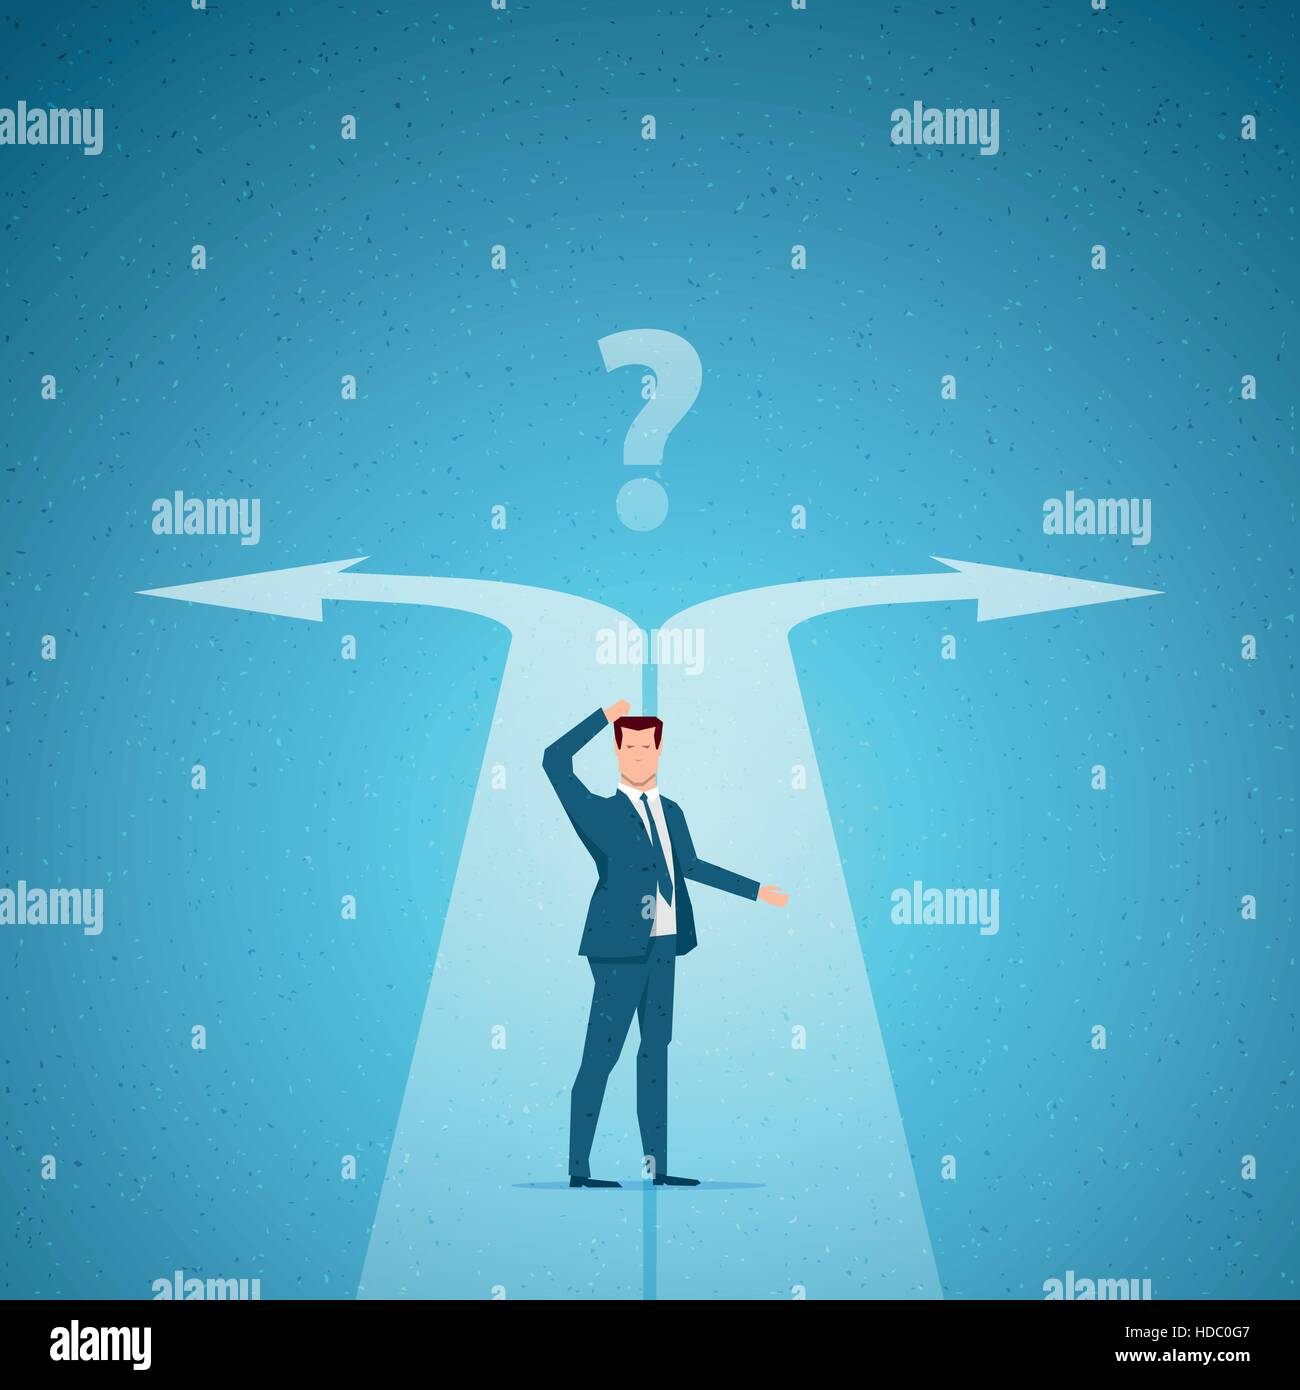 Business concept vector illustration. Choices, career, confused mind concept. Elements are layered separately in - Stock Image